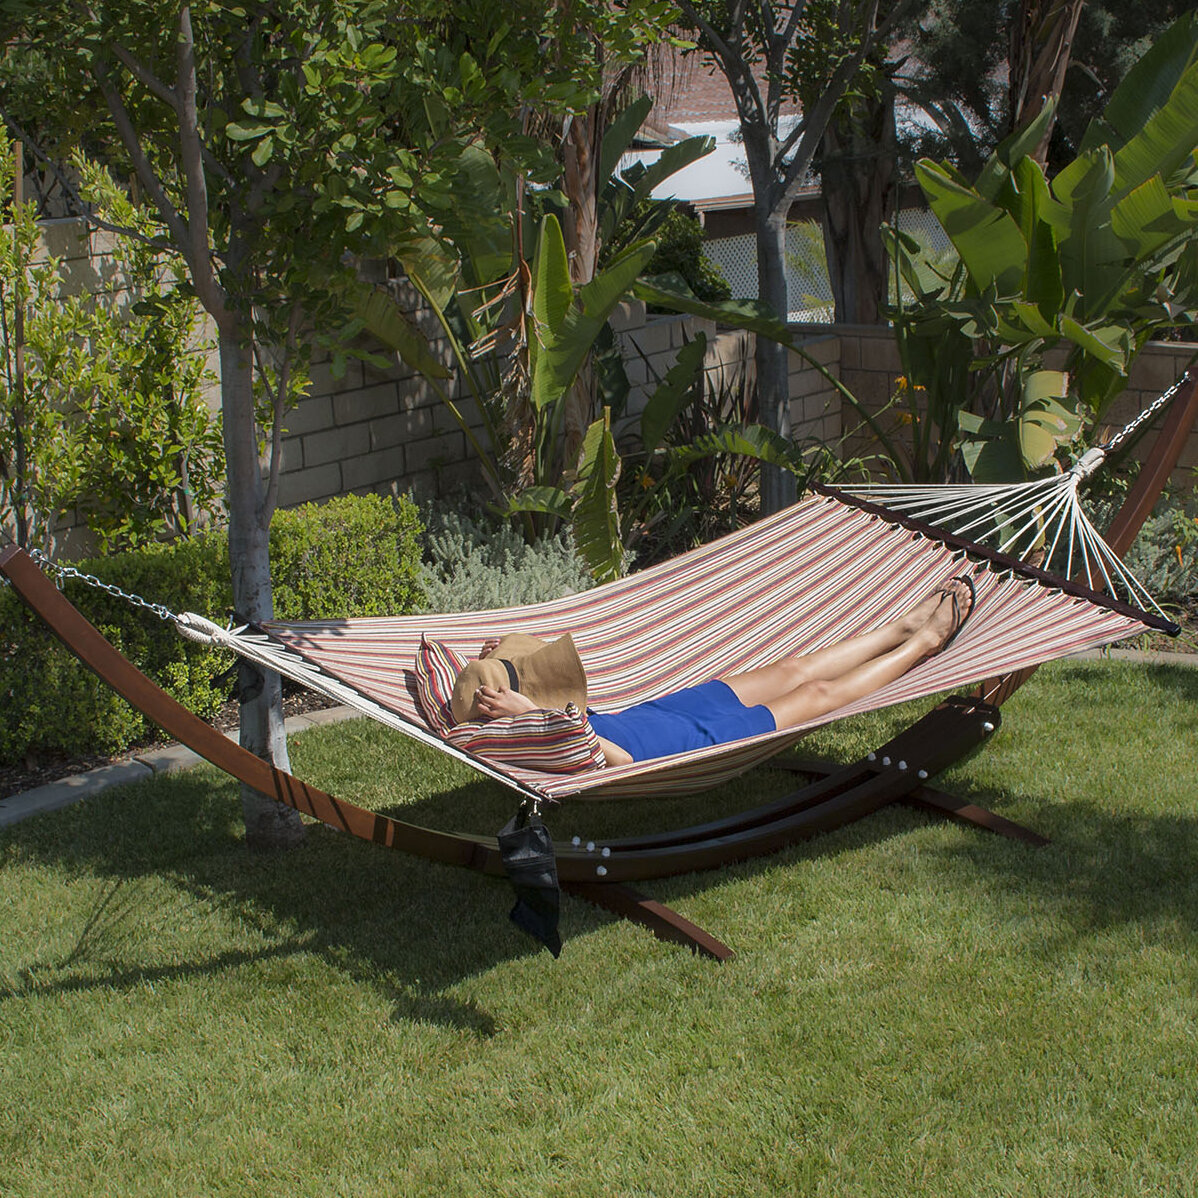 arc chair a hawaii lovely outstanding day hammock with hang cabinet how tie stand wooden to ways emergency thevol diy national backyard creative wood